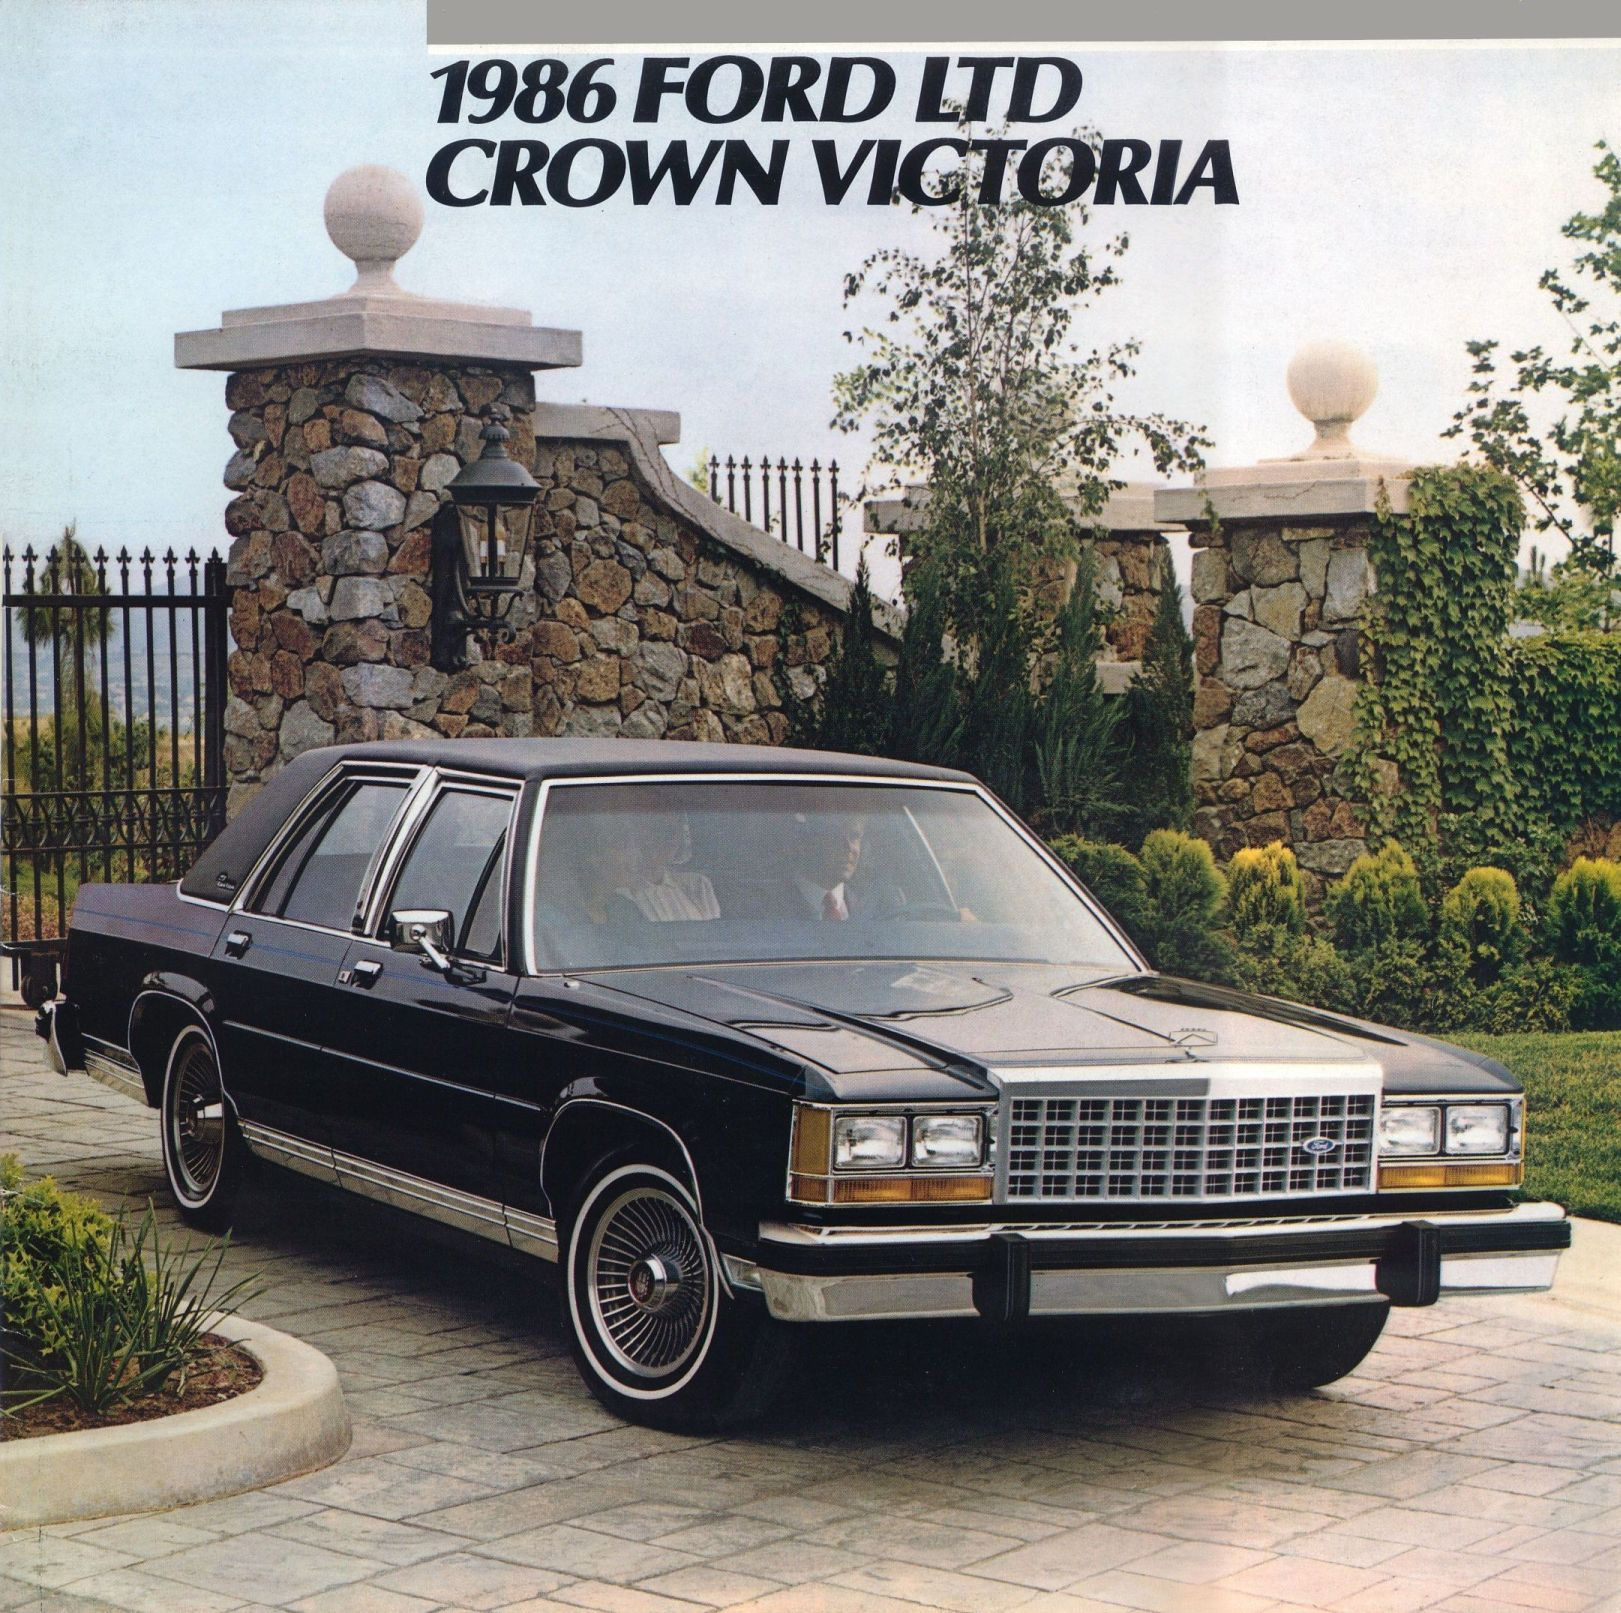 1986 Ford Crown Victoria brochure